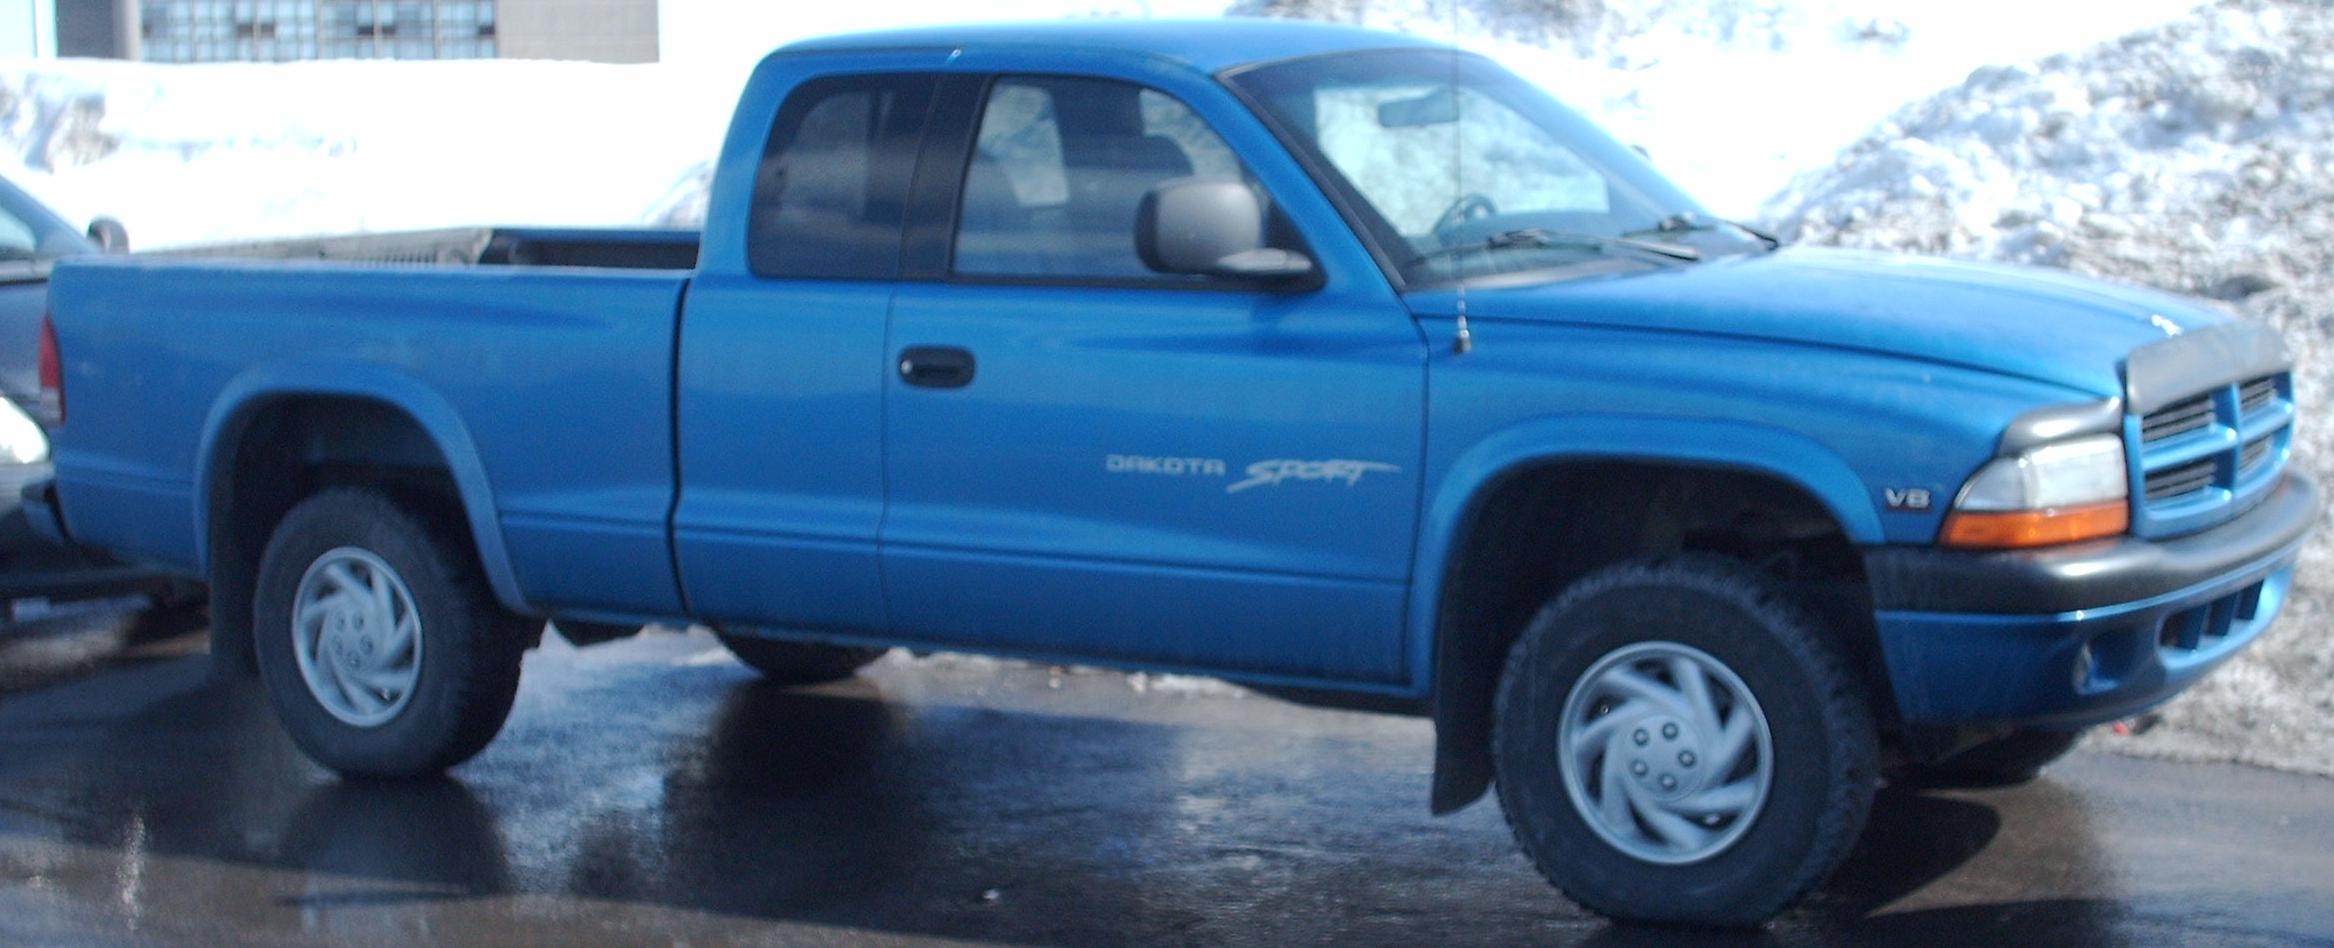 Dodge dakota extended cab